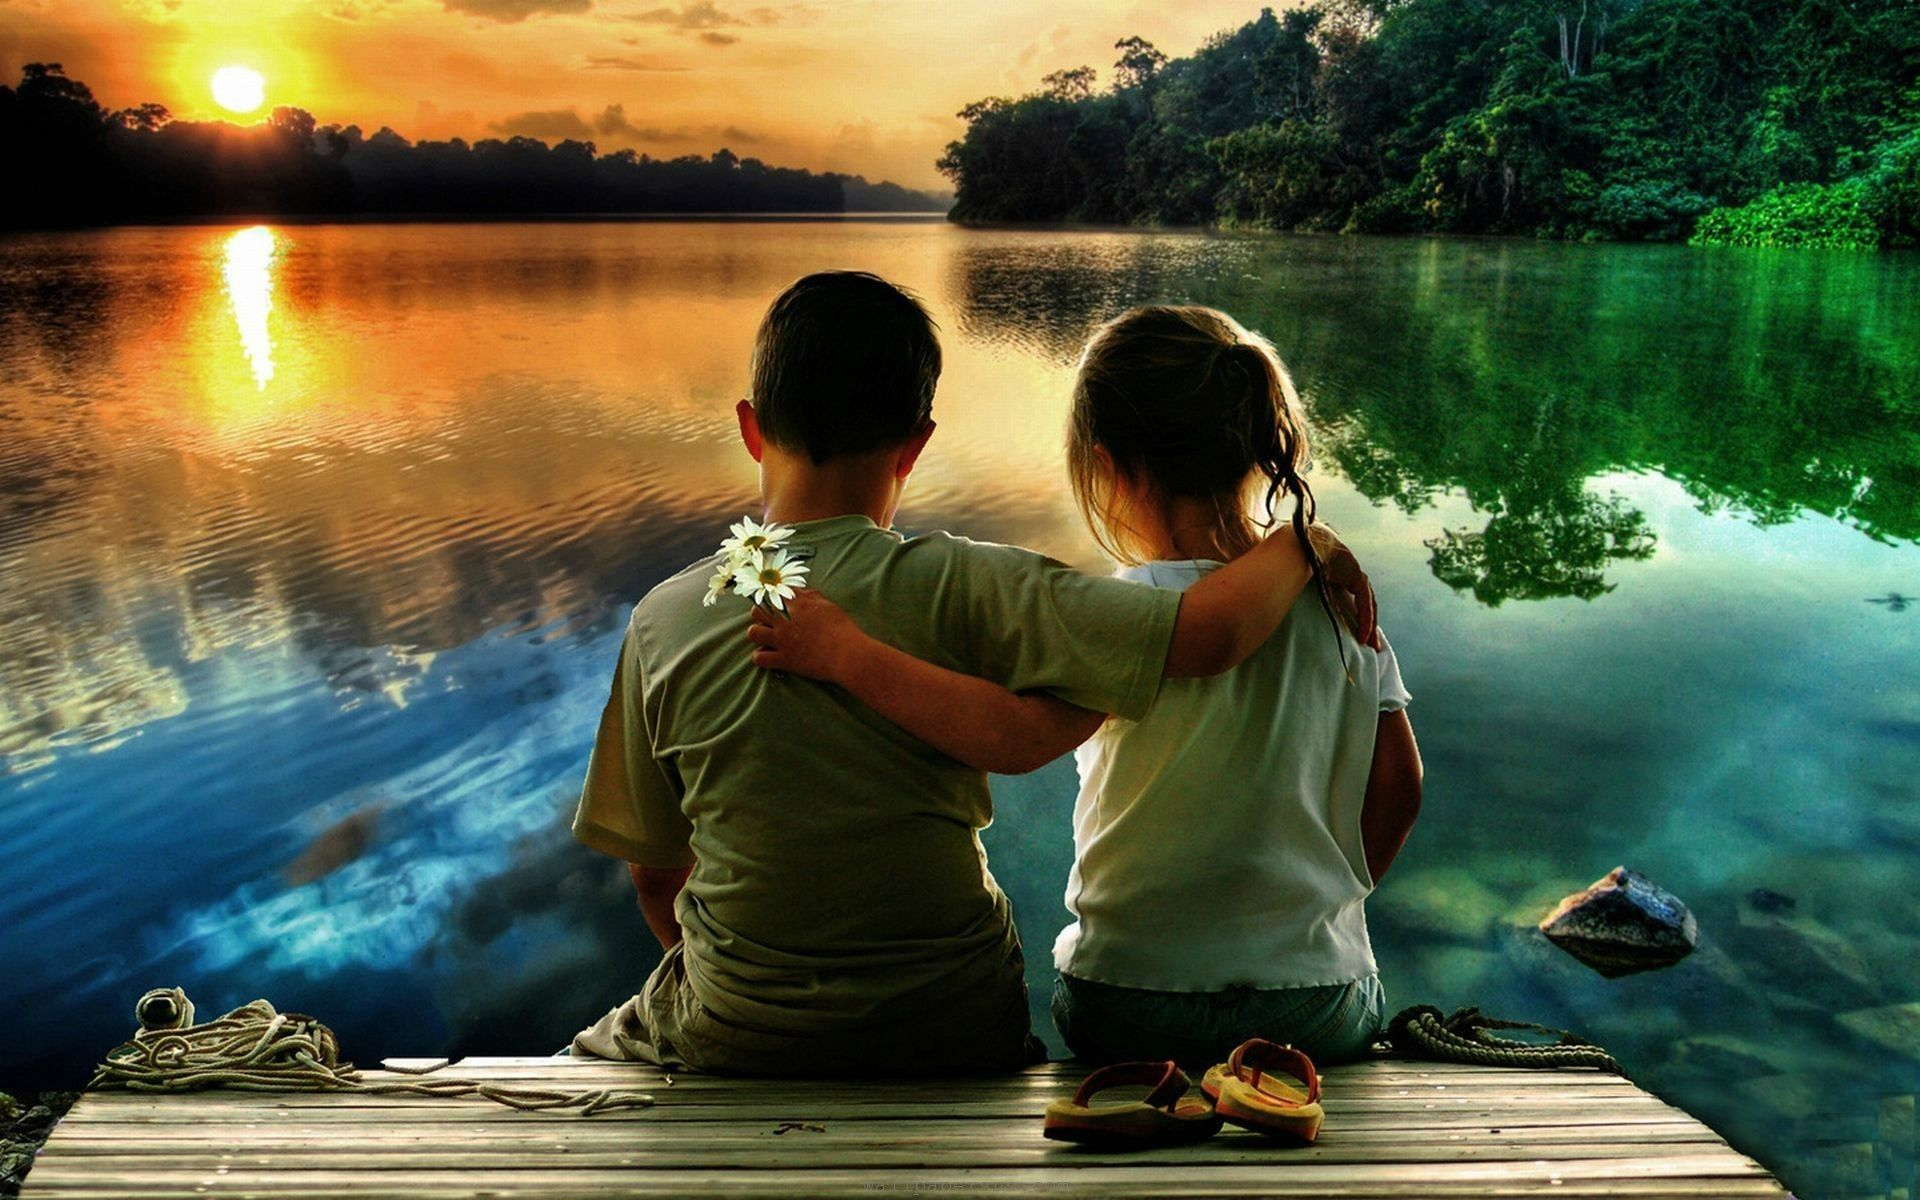 Wallpaper download boy - Childhood Friendship Boy And Girl Love Hd Wallpapers Free Download